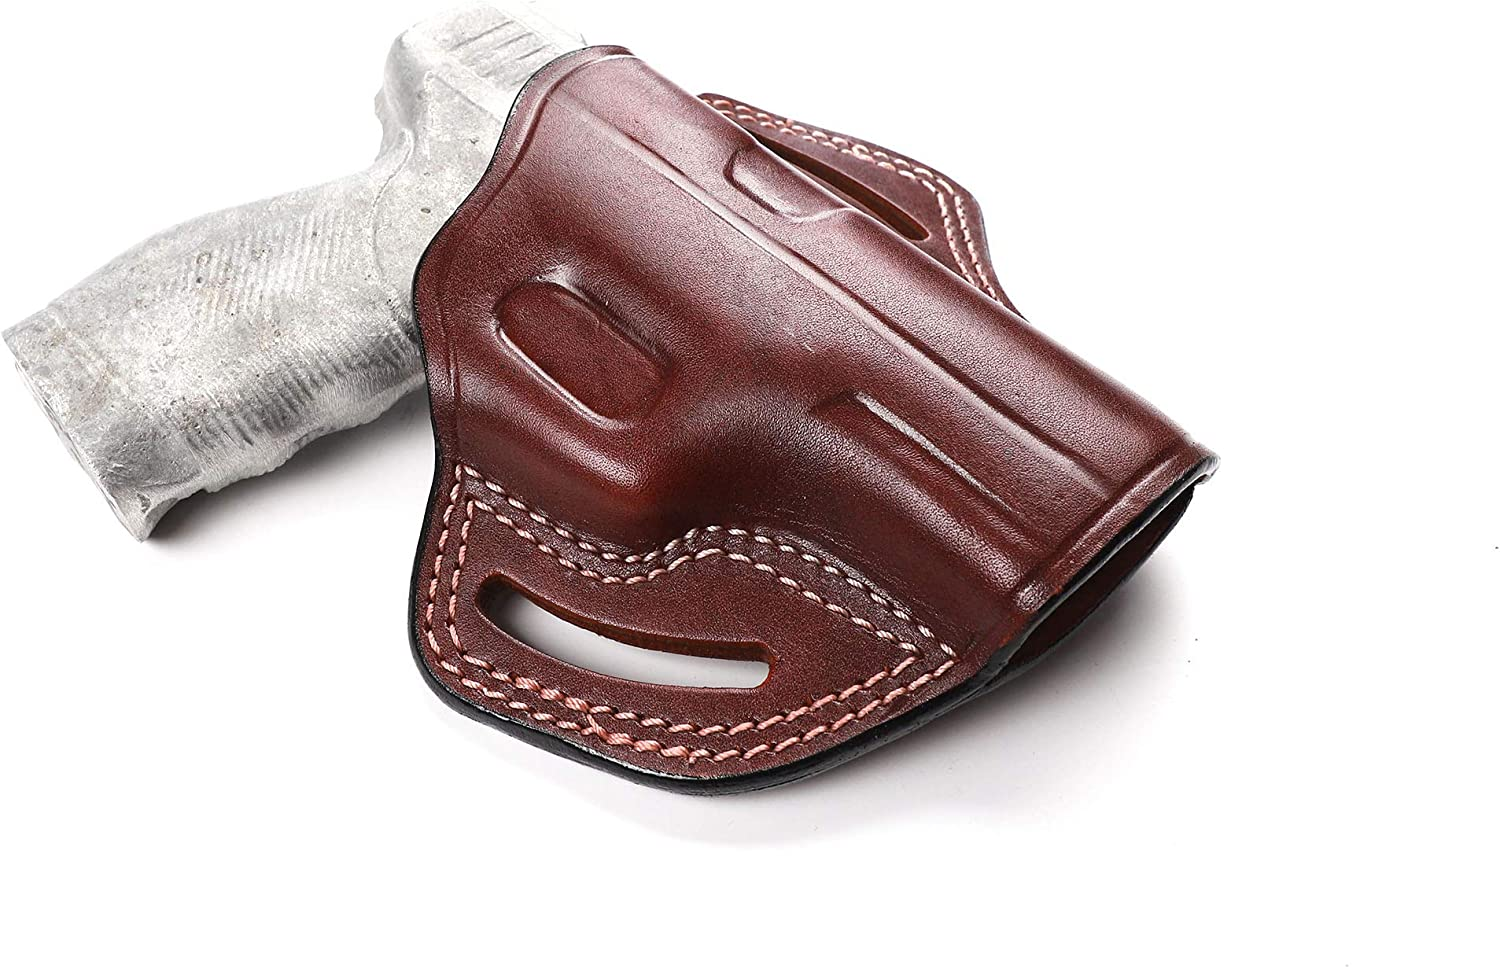 Pusat Holster Leather Pancake Sport 2021 new New mail order OWB Tau 4.20 BBL for